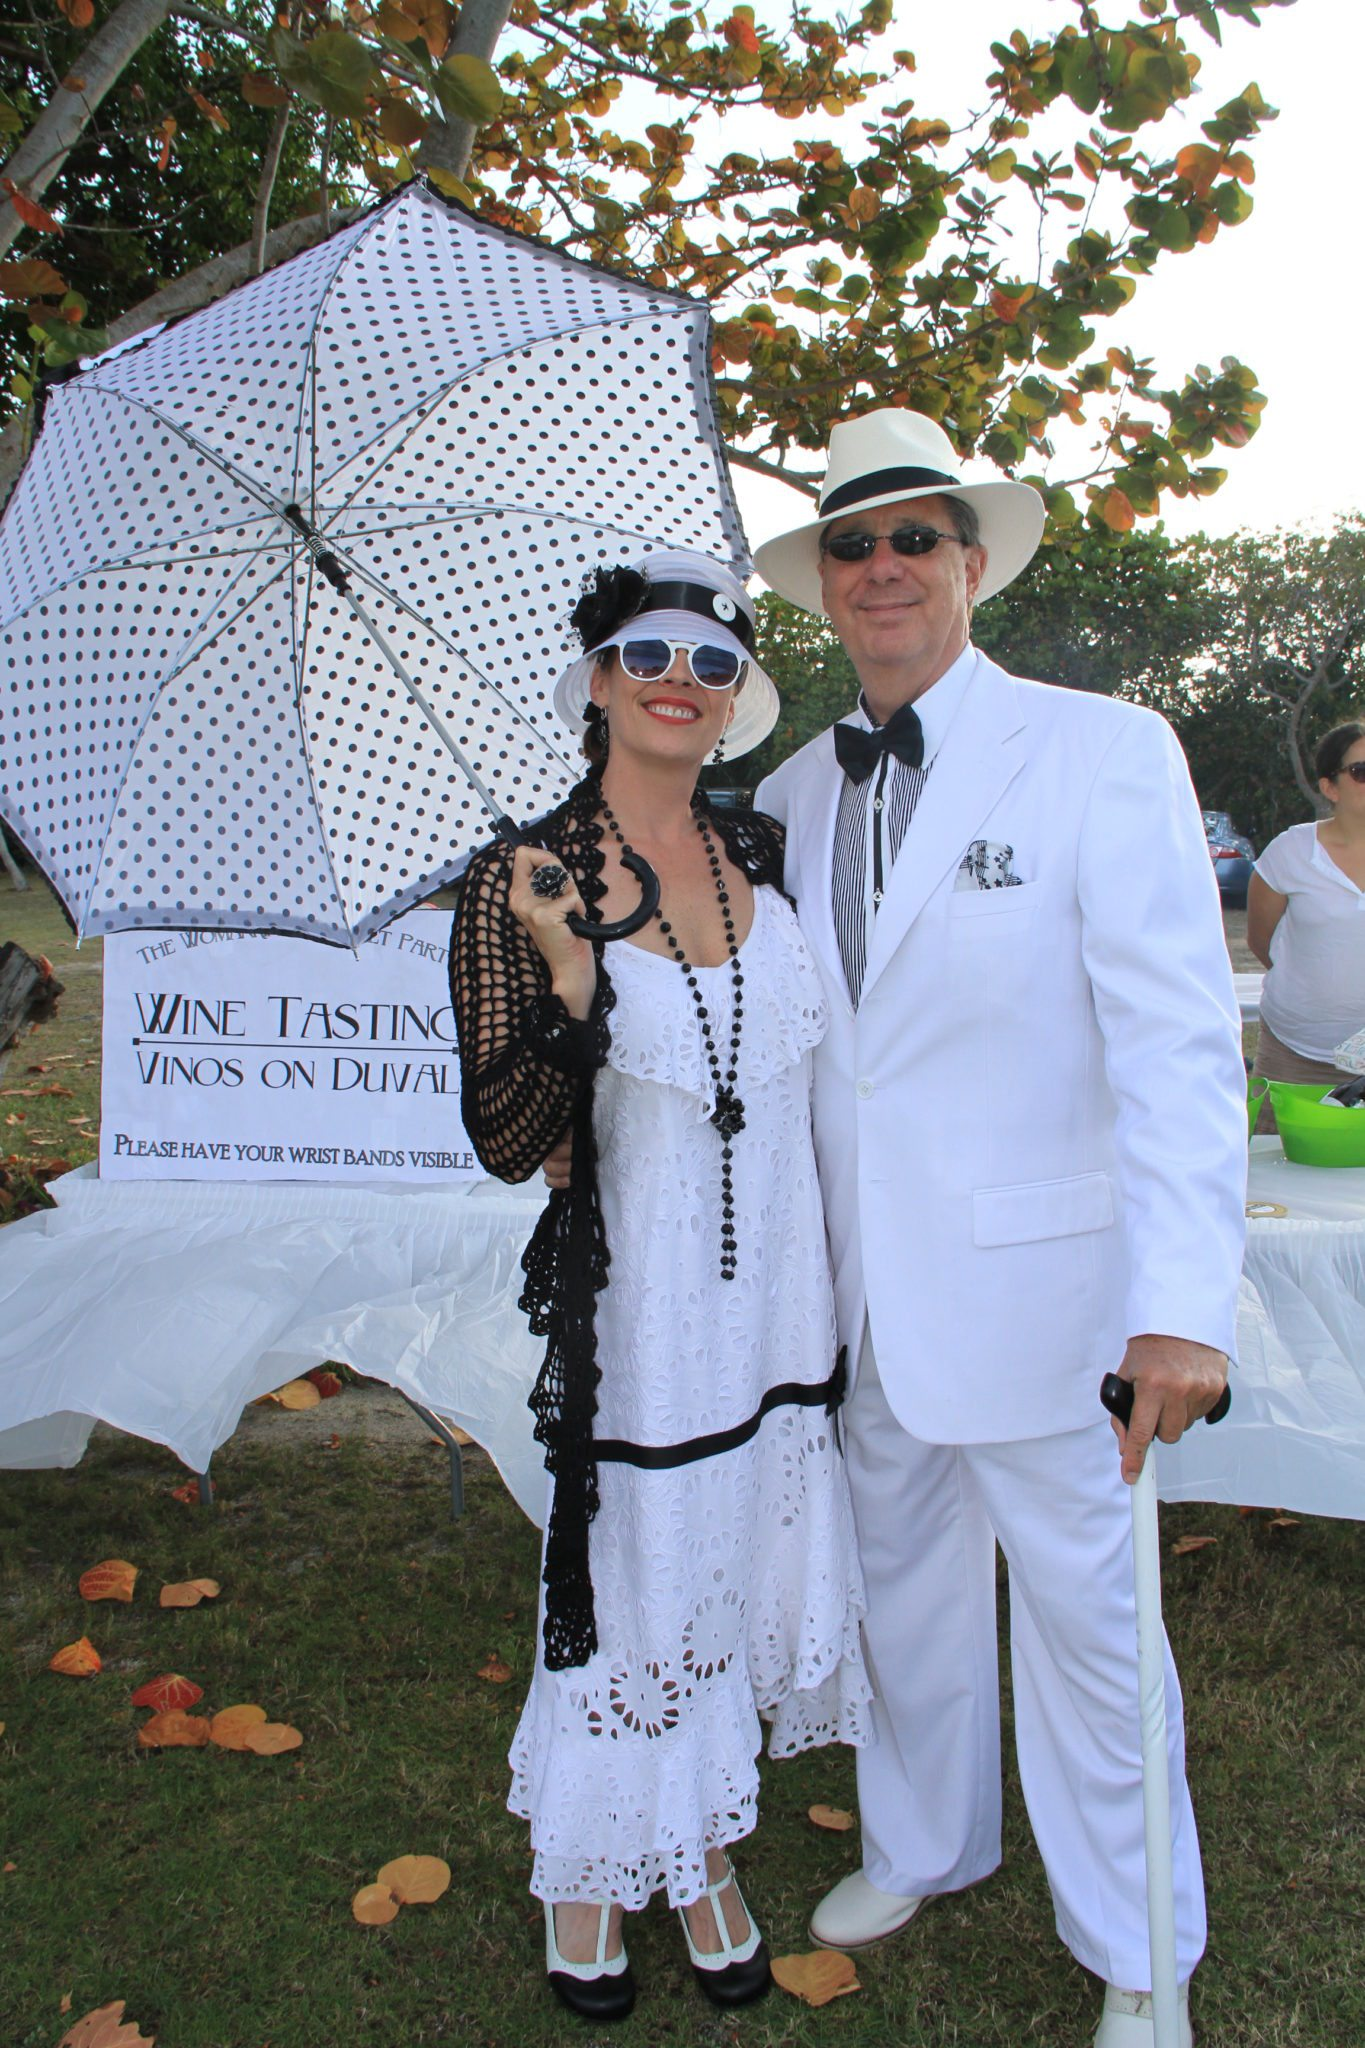 Best dressed couple Melody Cooper and Bob Bowersox are triumphant winners of this category.